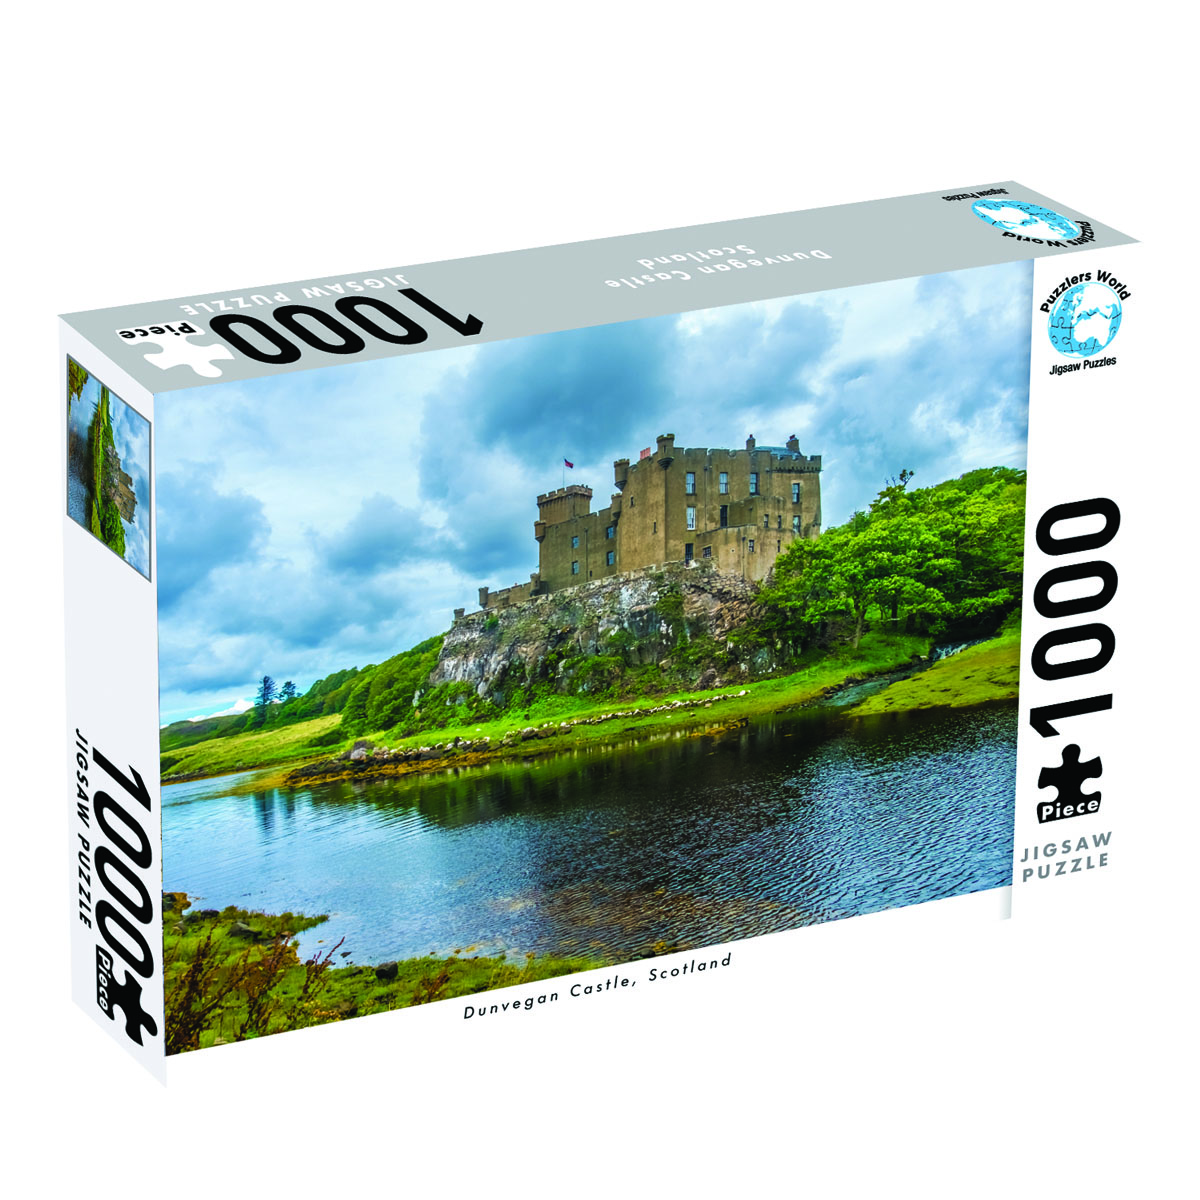 Puzzlers World ~ Artistic Jigsaw 1000pc Puzzle ~ Dunvegan Castle Scotland